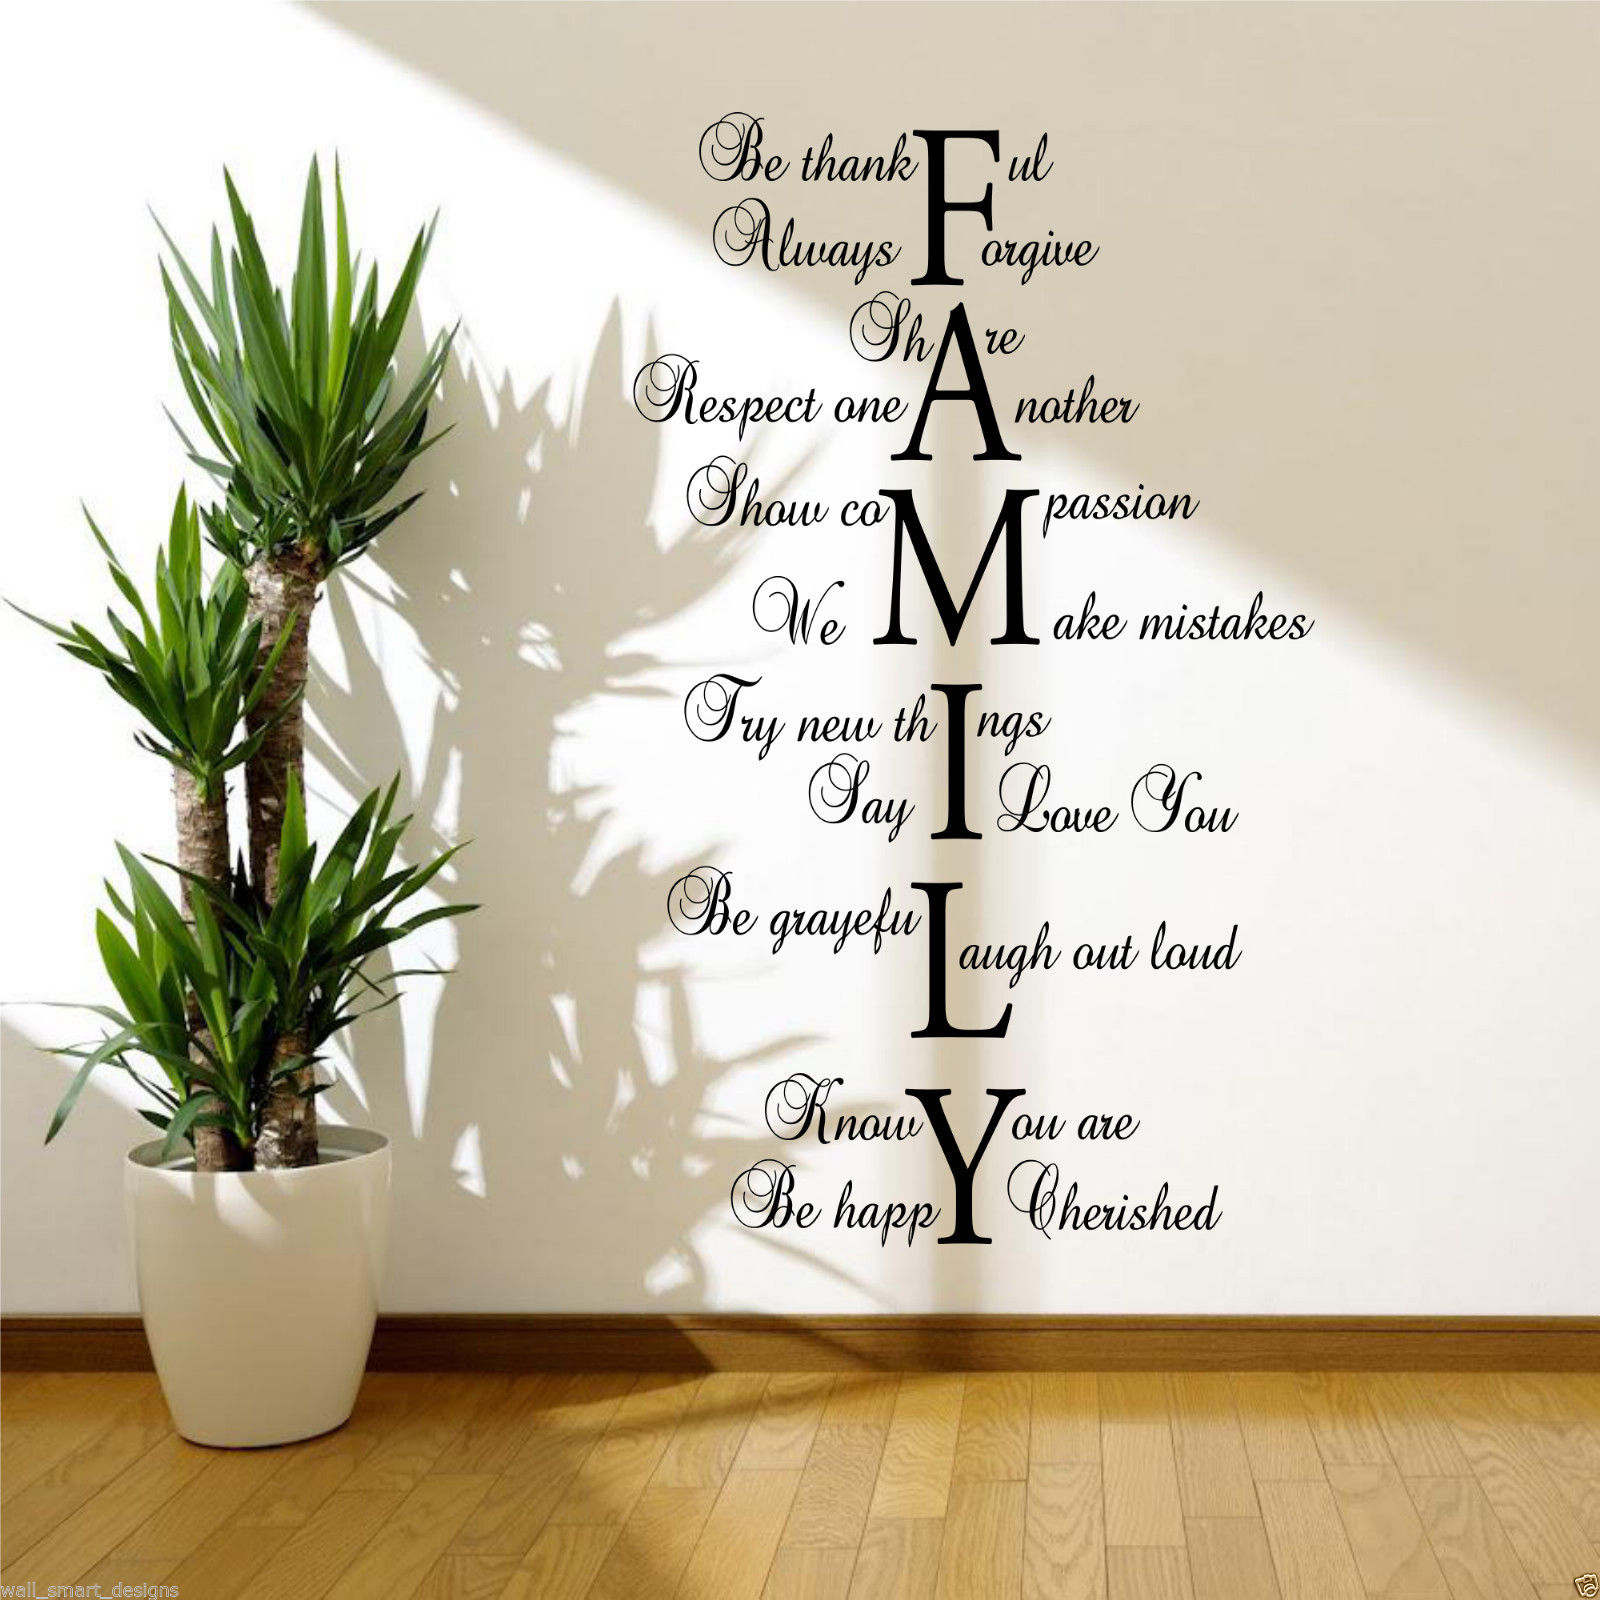 Family love life wall art sticker quote room decal mural transfer family love life wall art sticker quote room amipublicfo Choice Image